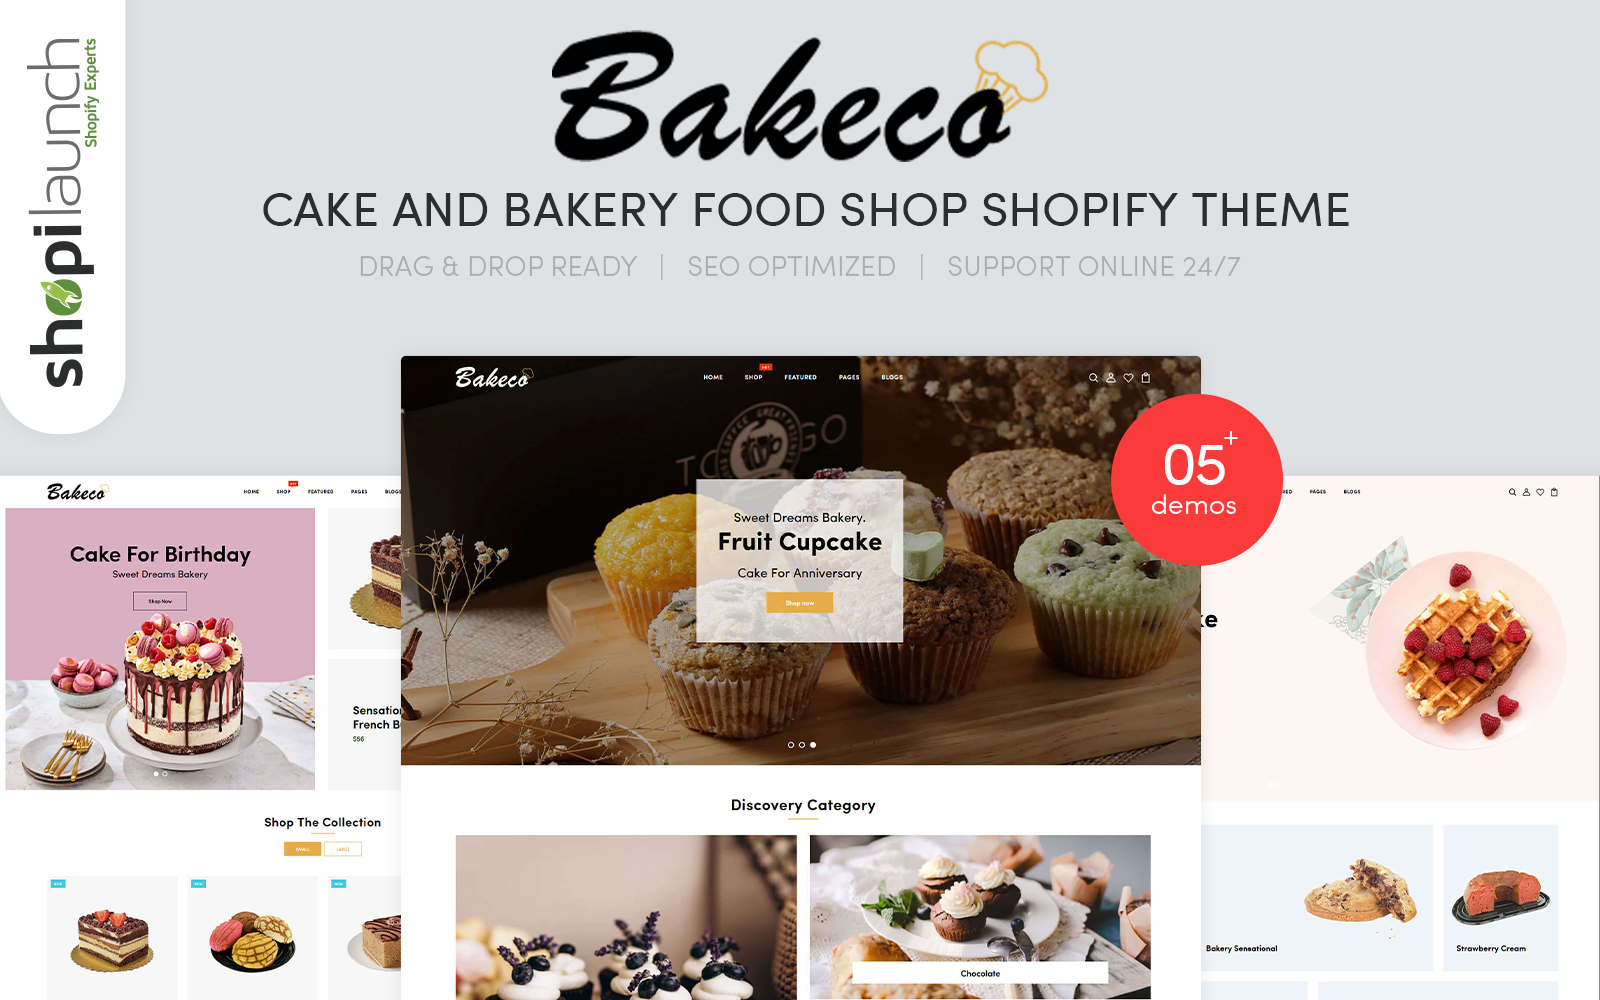 Bakeco - Cake & Bakery Food Shop Responsive Shopify Theme